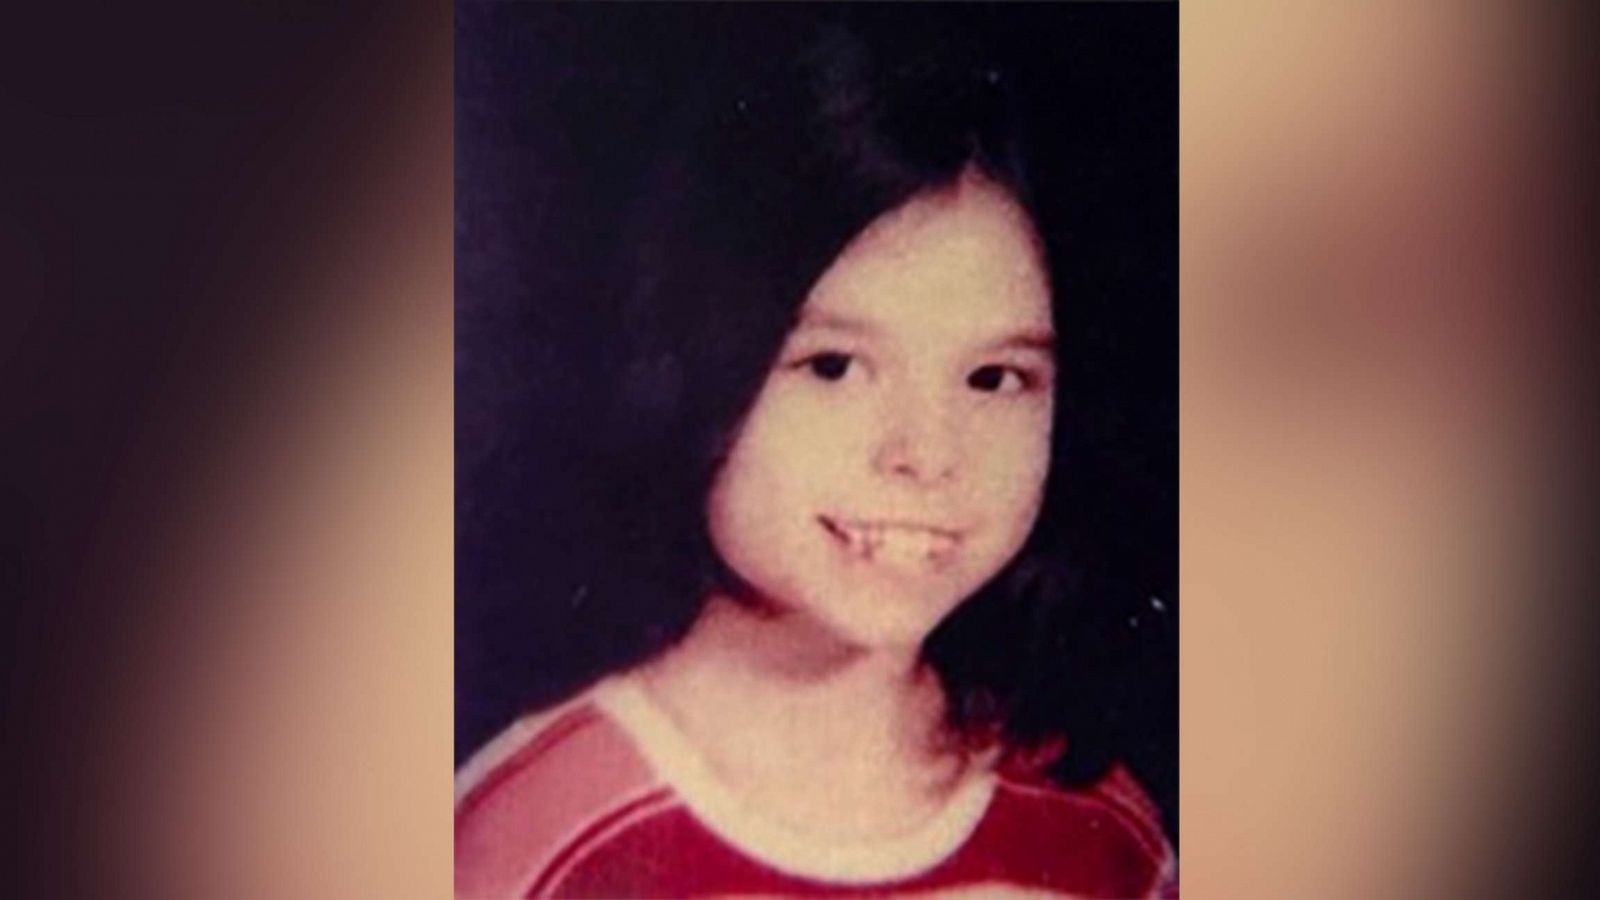 Police arrest suspect in decades-old cold case murder of 10-year-old